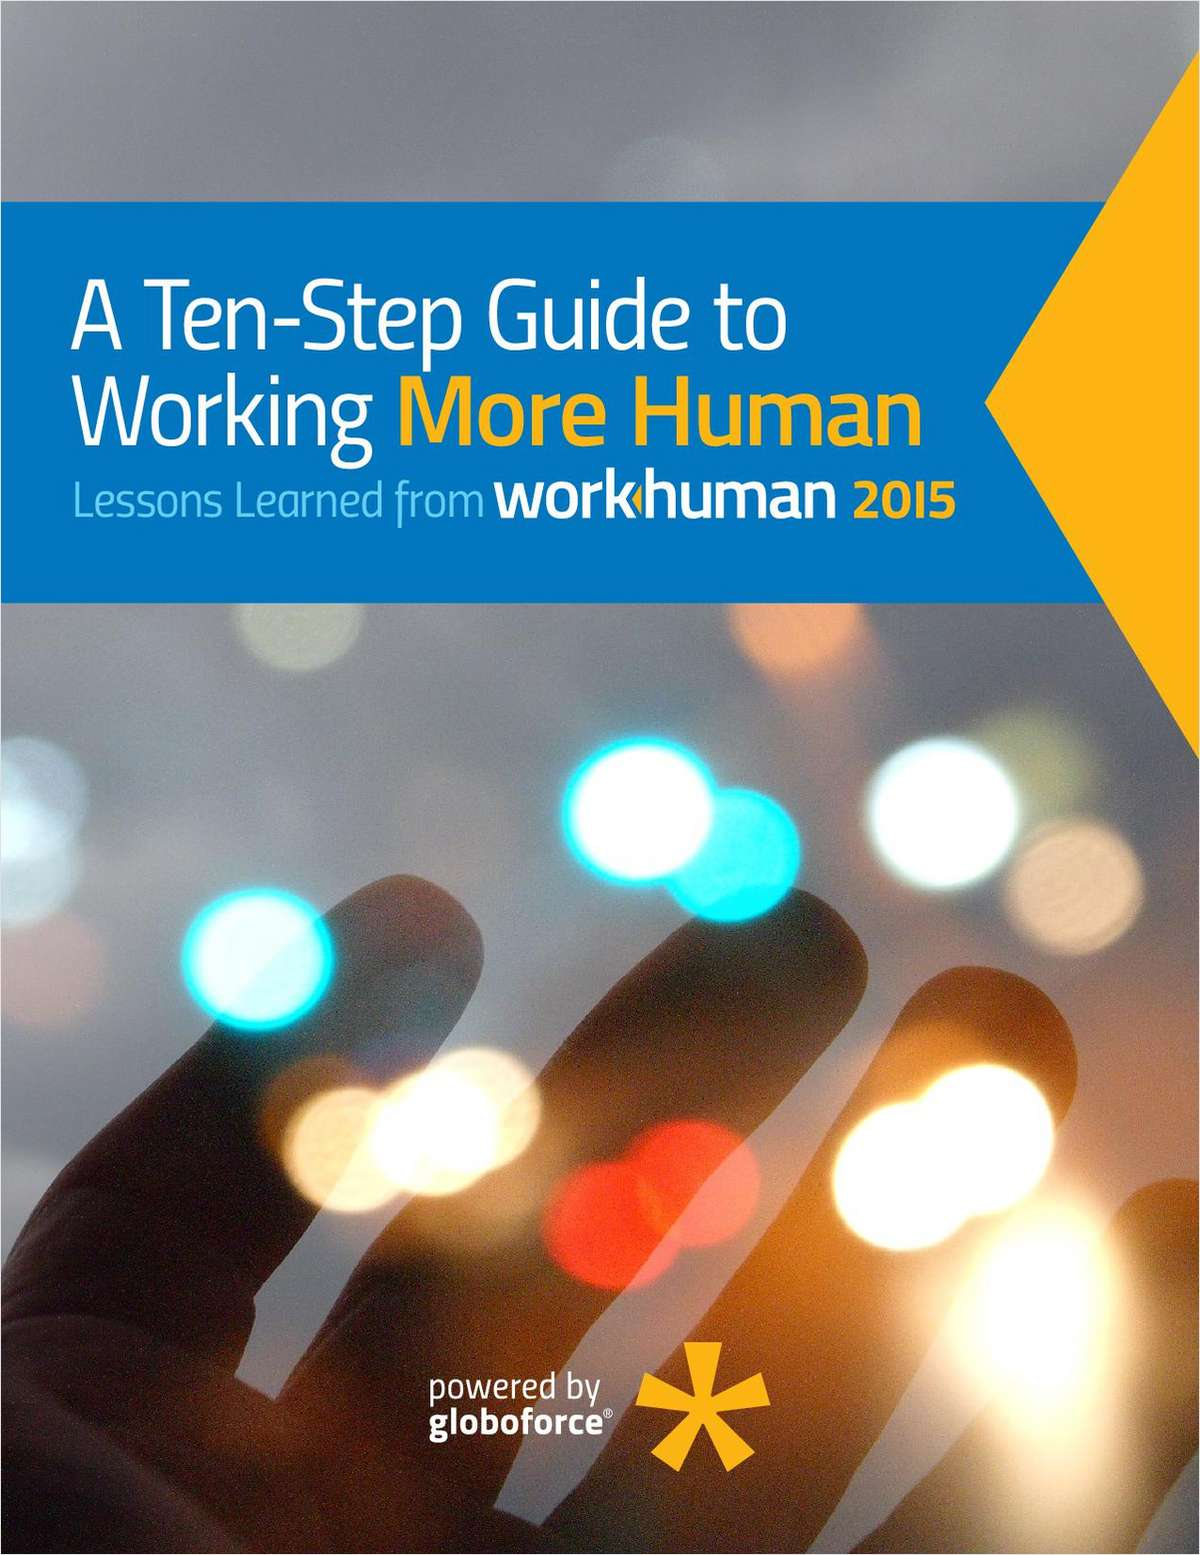 A Ten-Step Guide to Working More Human